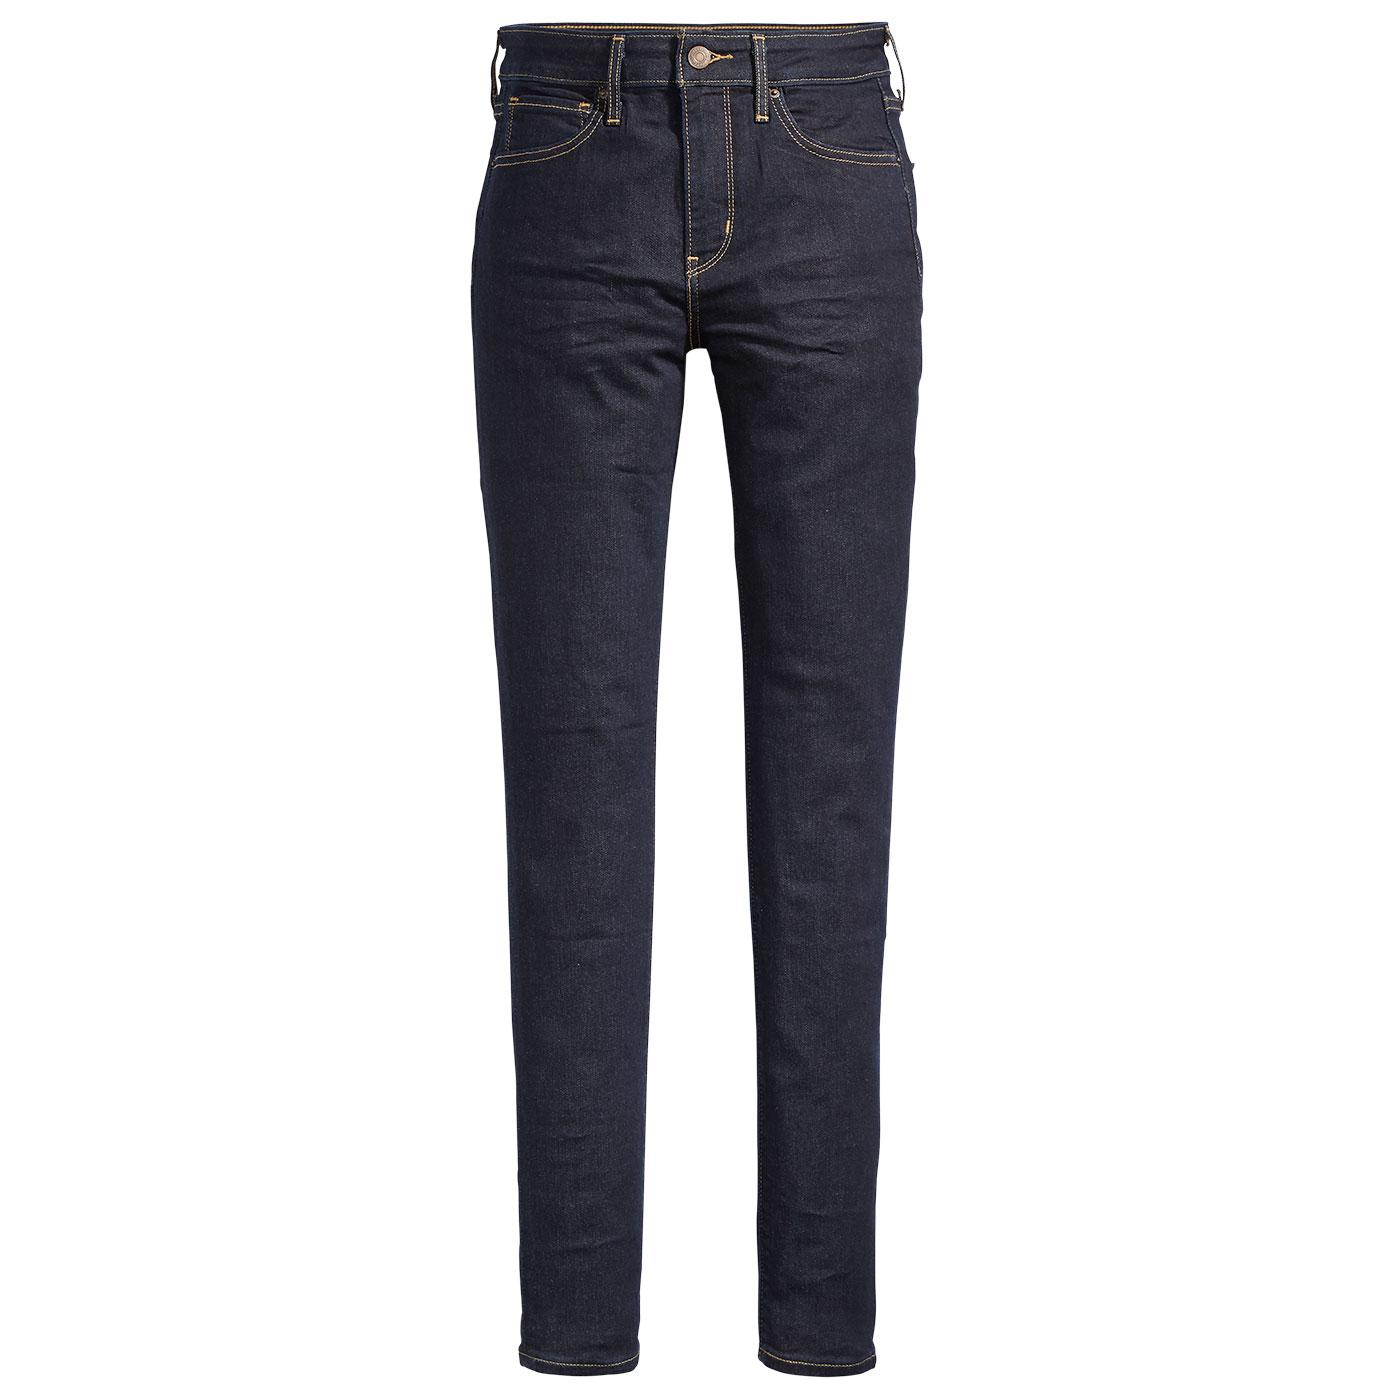 LEVI'S 721 High Rise Skinny Jeans - To The Nine